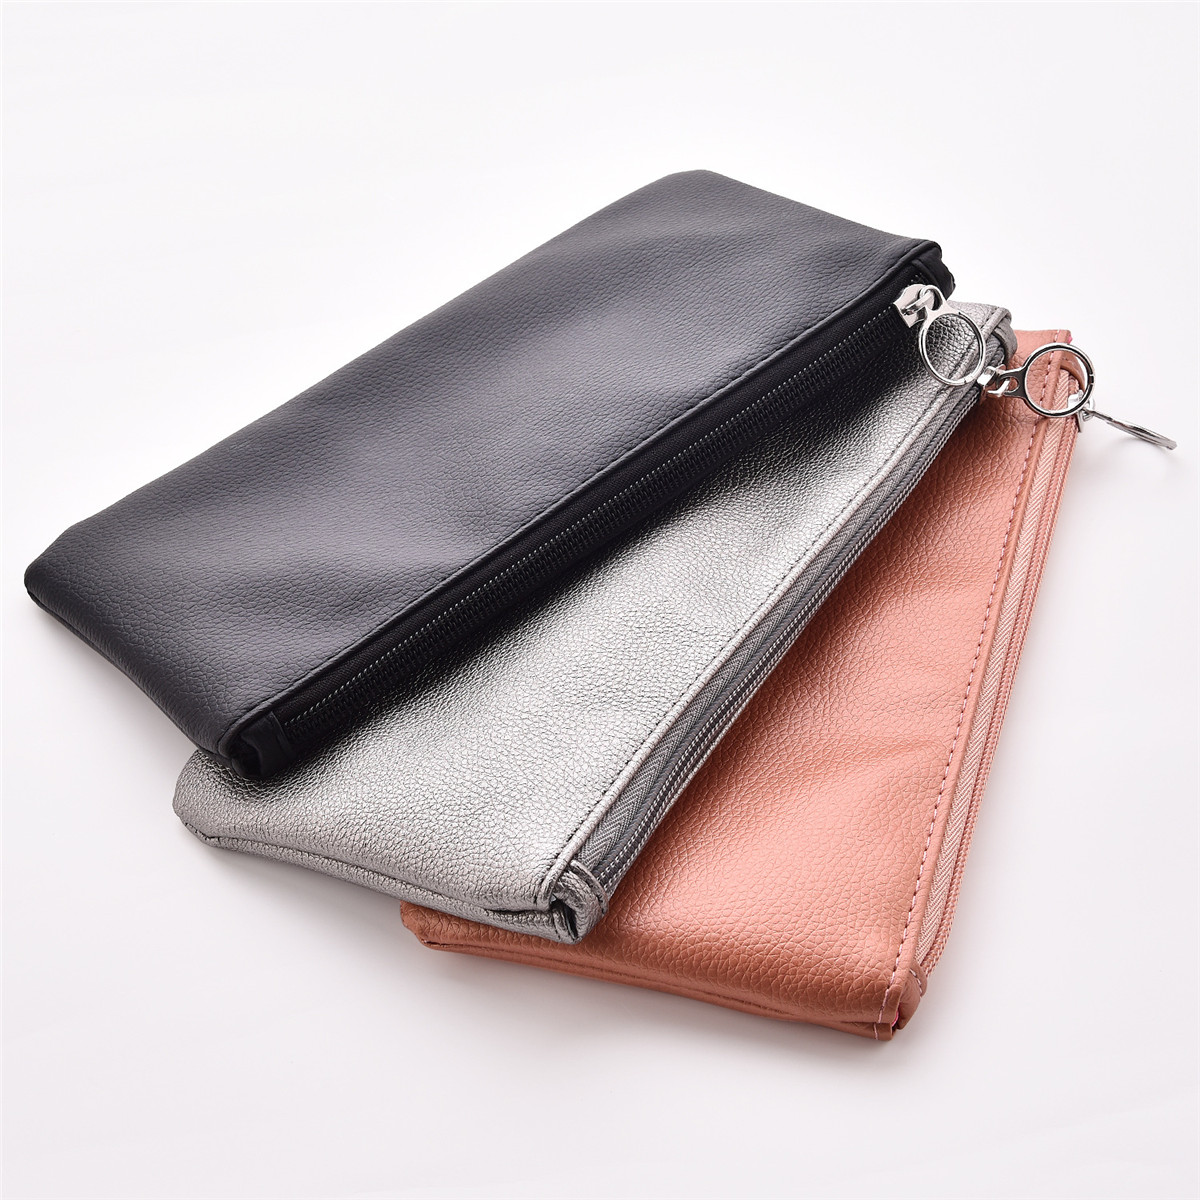 Solid Color PU Leather Purse Pencil Case With Zippered Cosmetic Bag Makeup Bag Coin Money   Pouches For Women Travel Party